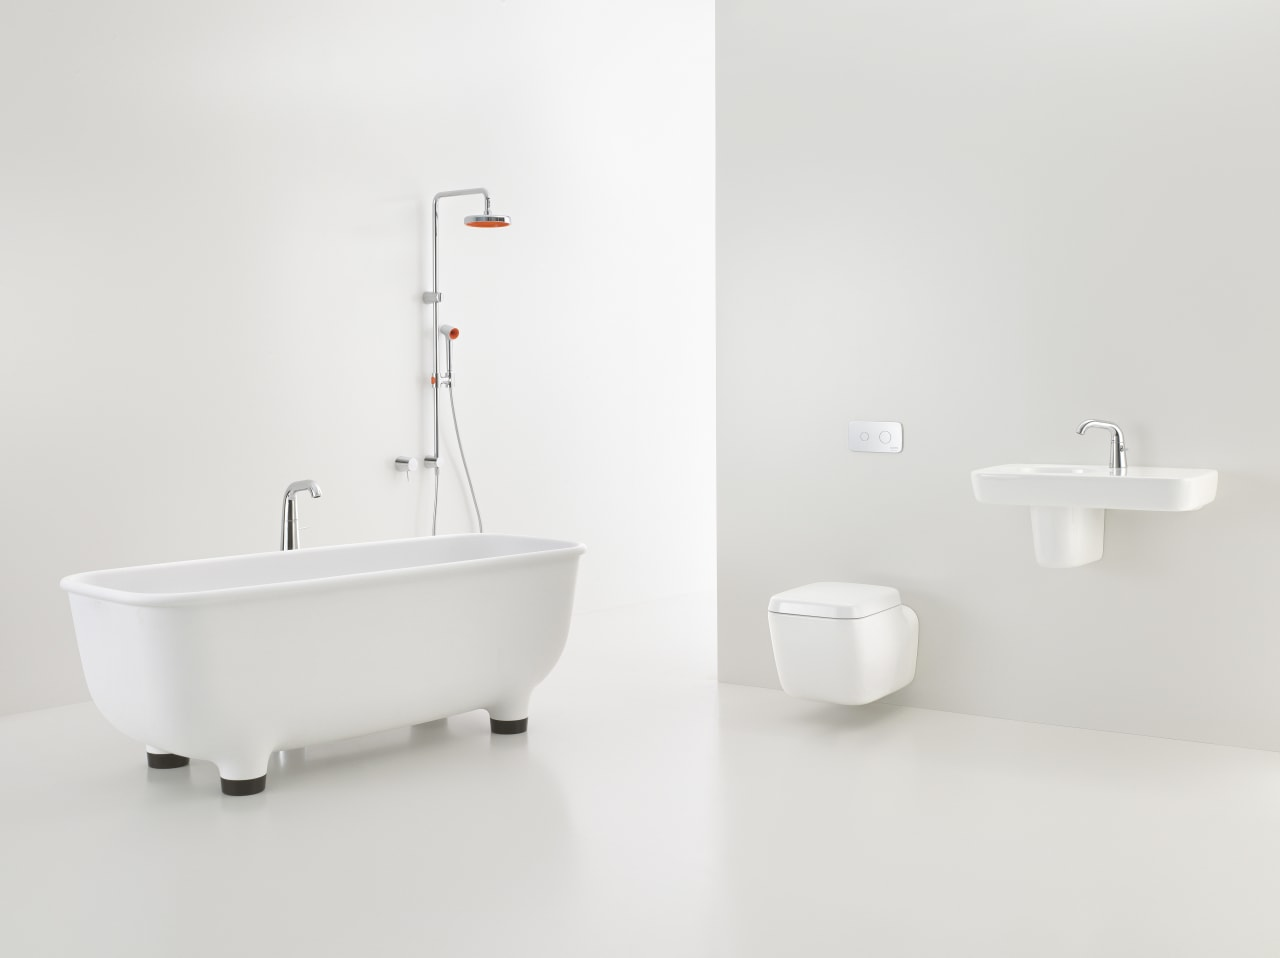 Caroma Marc Newson Collection bathroom, bathroom sink, bidet, ceramic, plumbing fixture, product, product design, tap, toilet seat, white